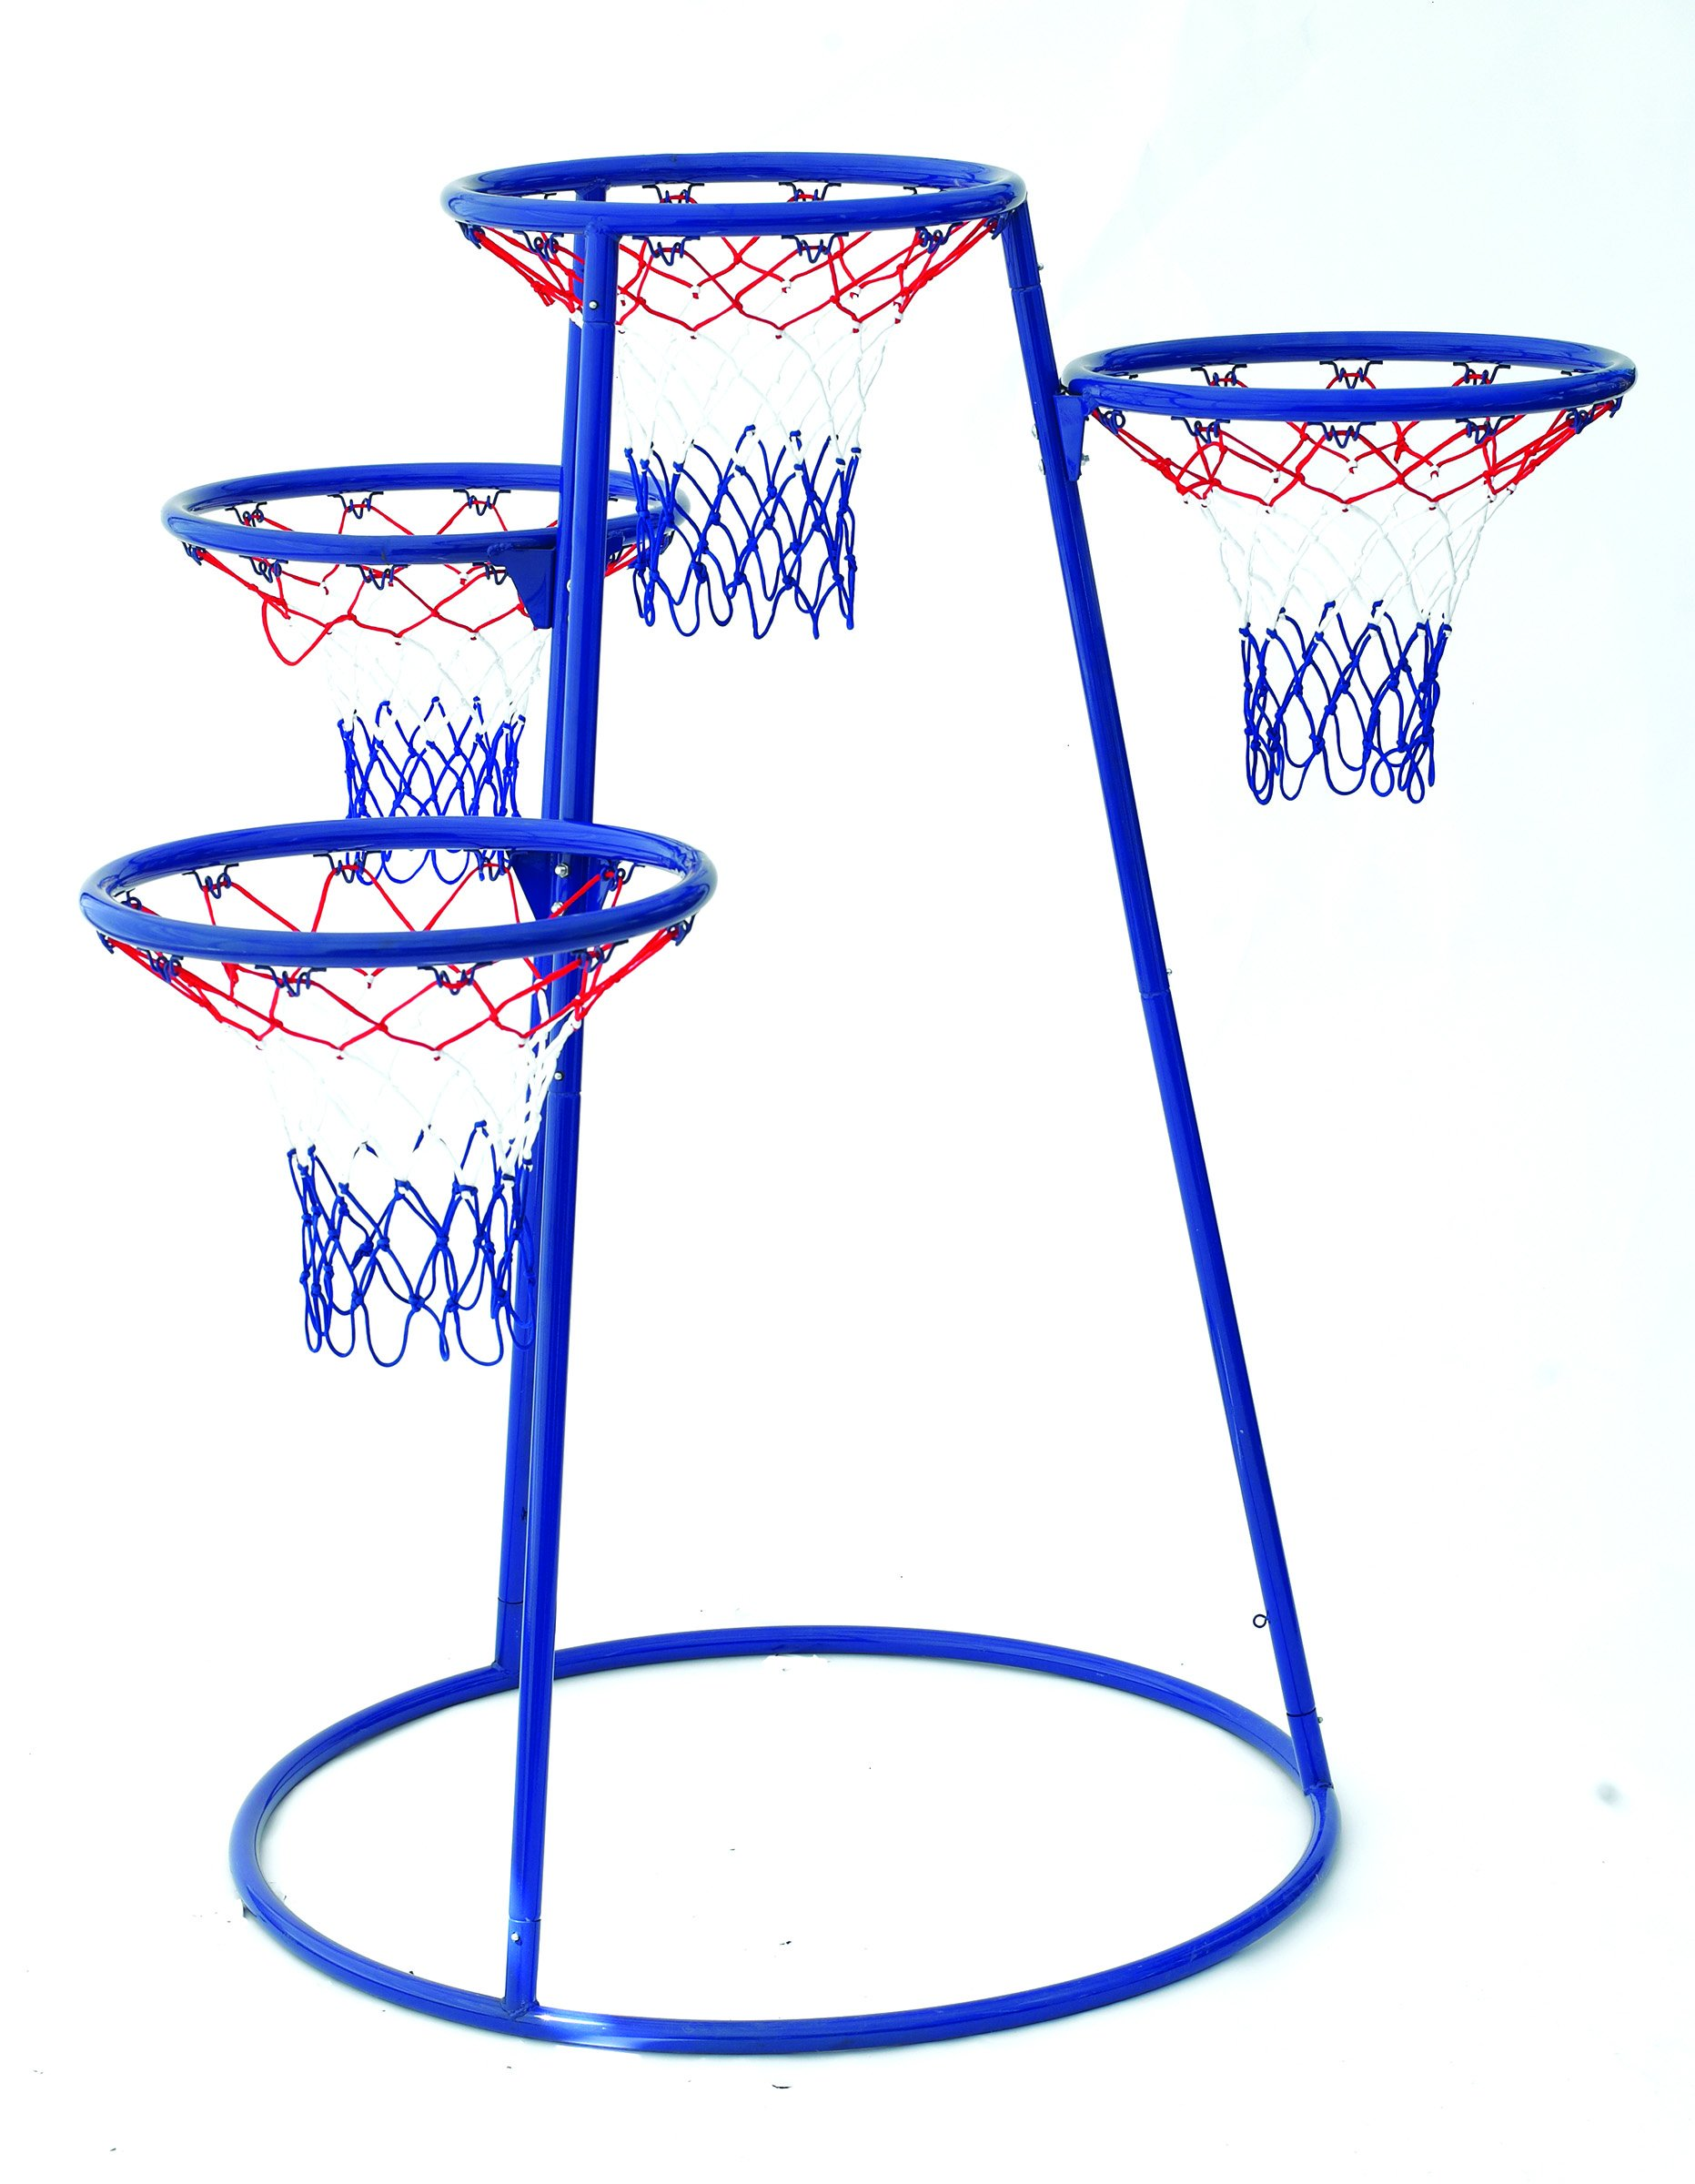 Angeles 4 Rings Basketball Stand with Storage Bag for Kids Active Play Toy (48 x 36 x 54 in)